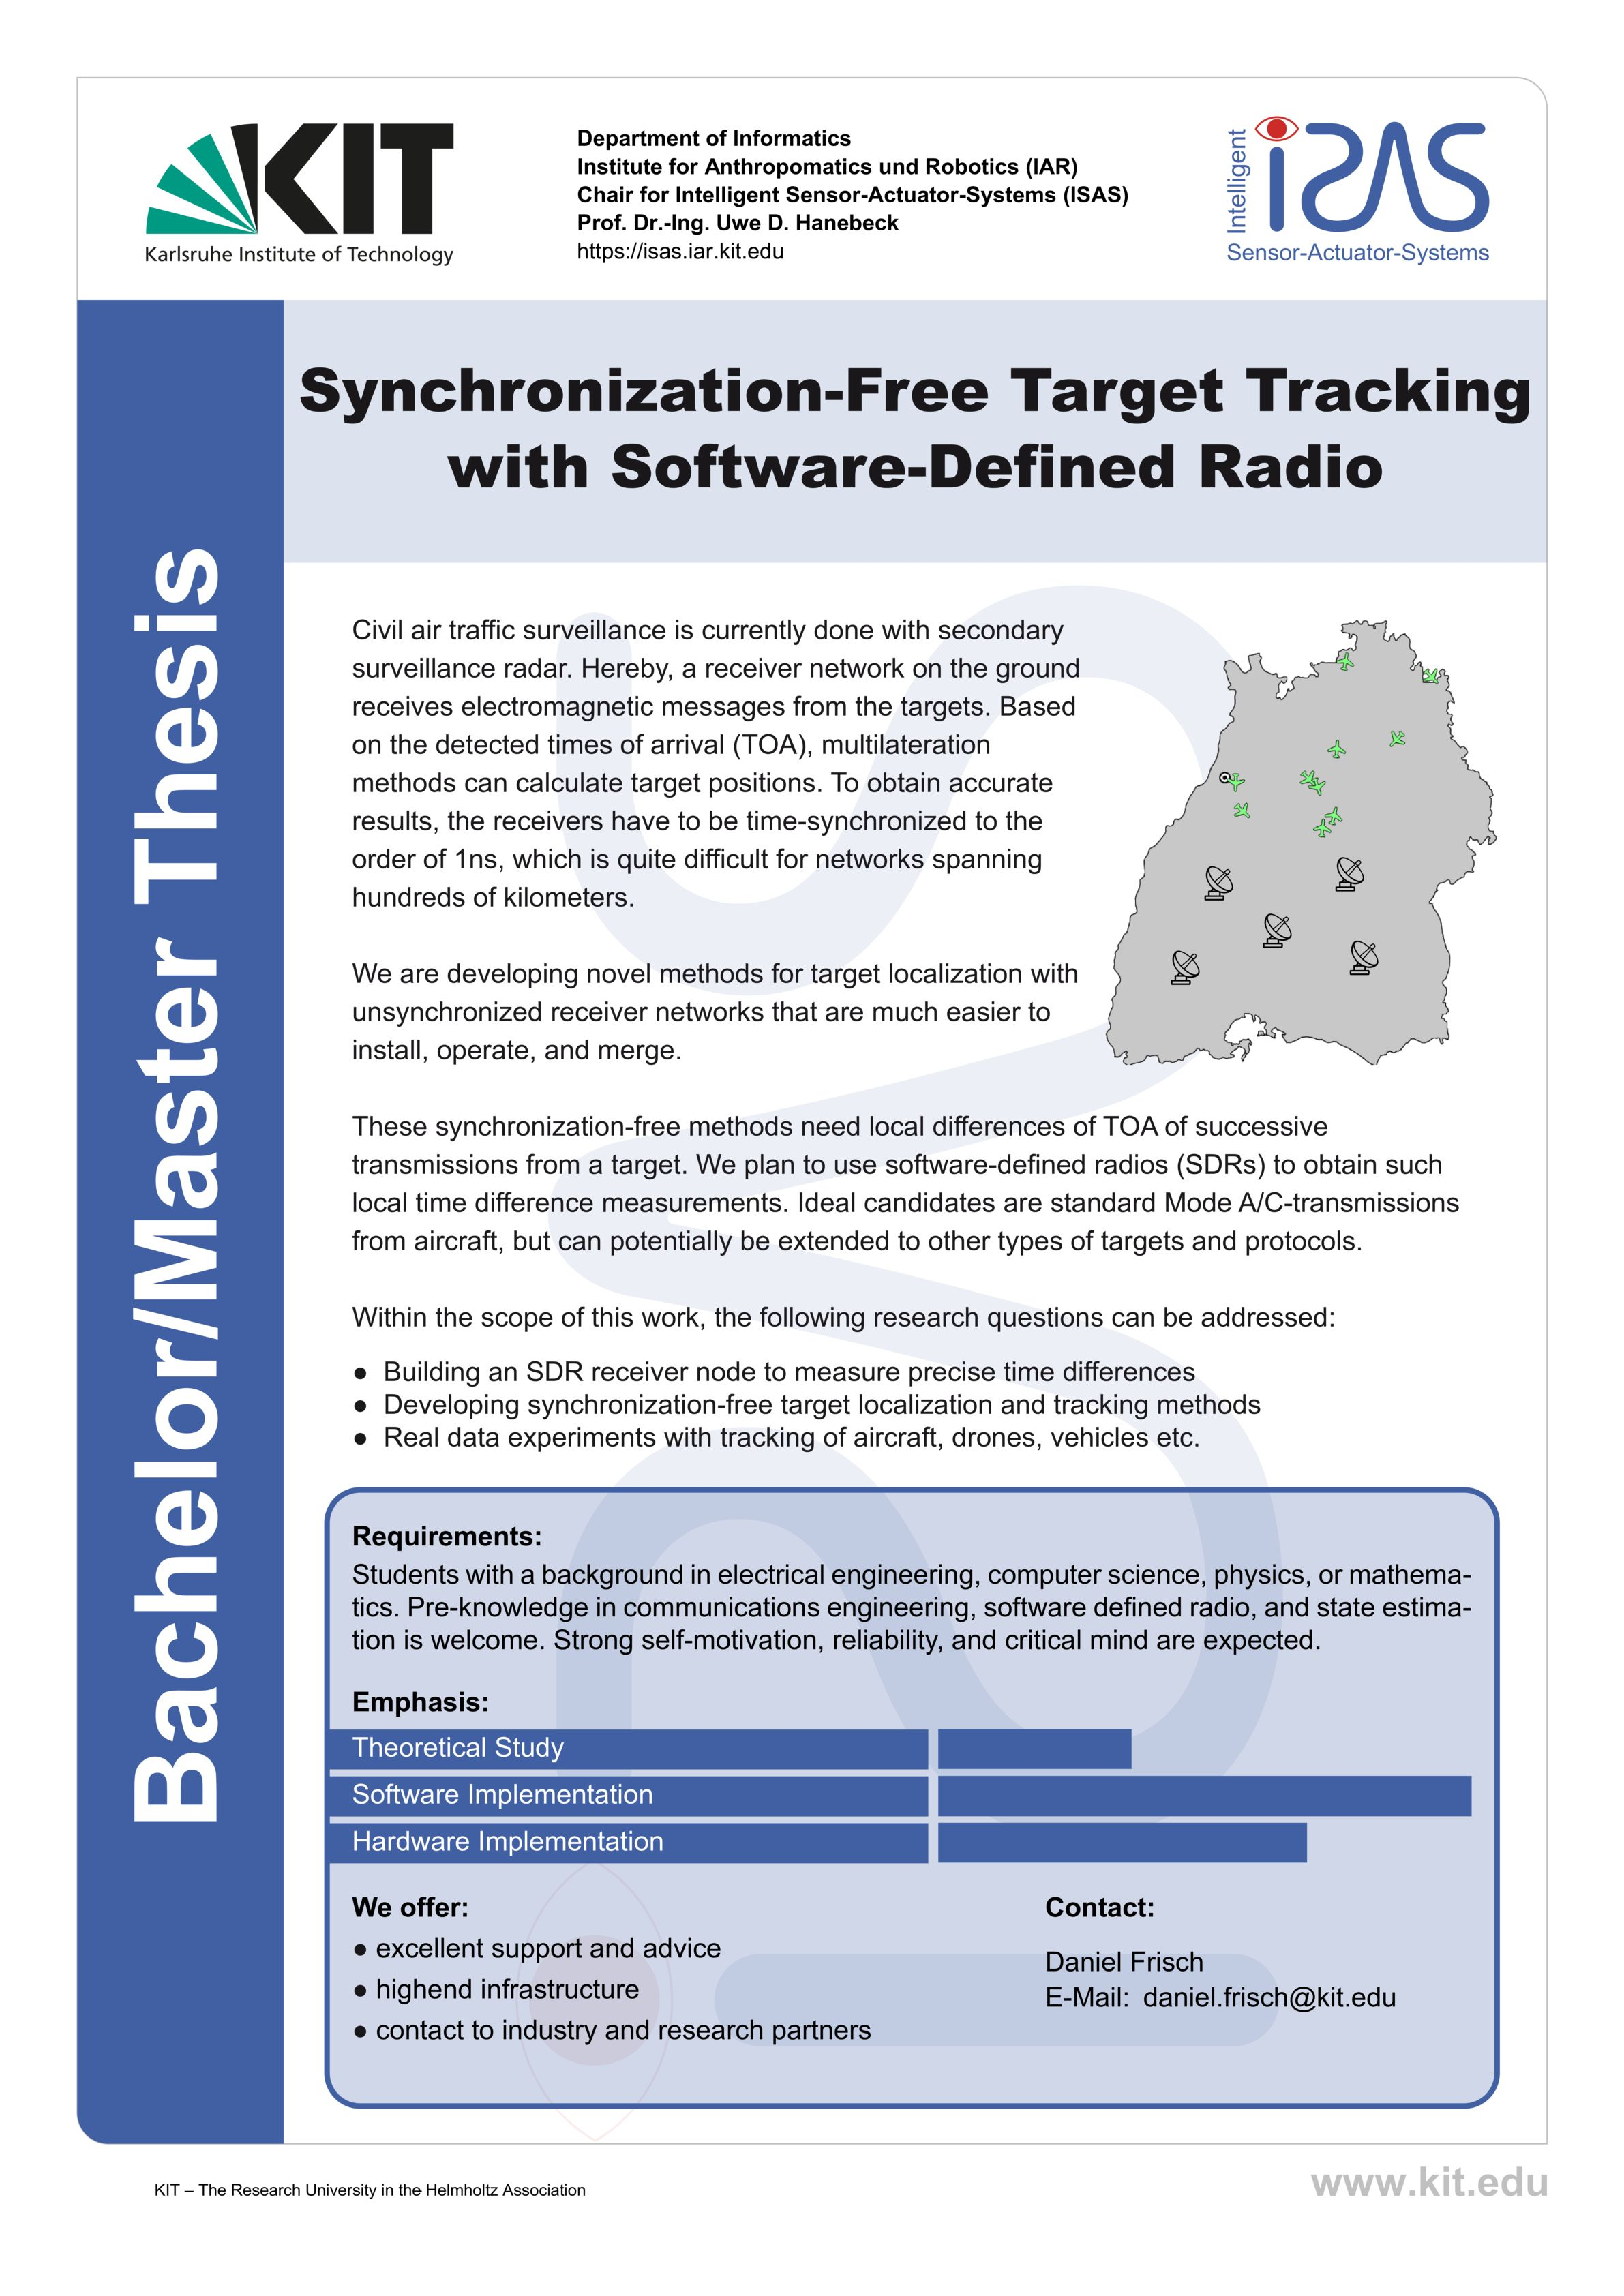 Synchronization-Free Target Tracking with Software Defined Radio